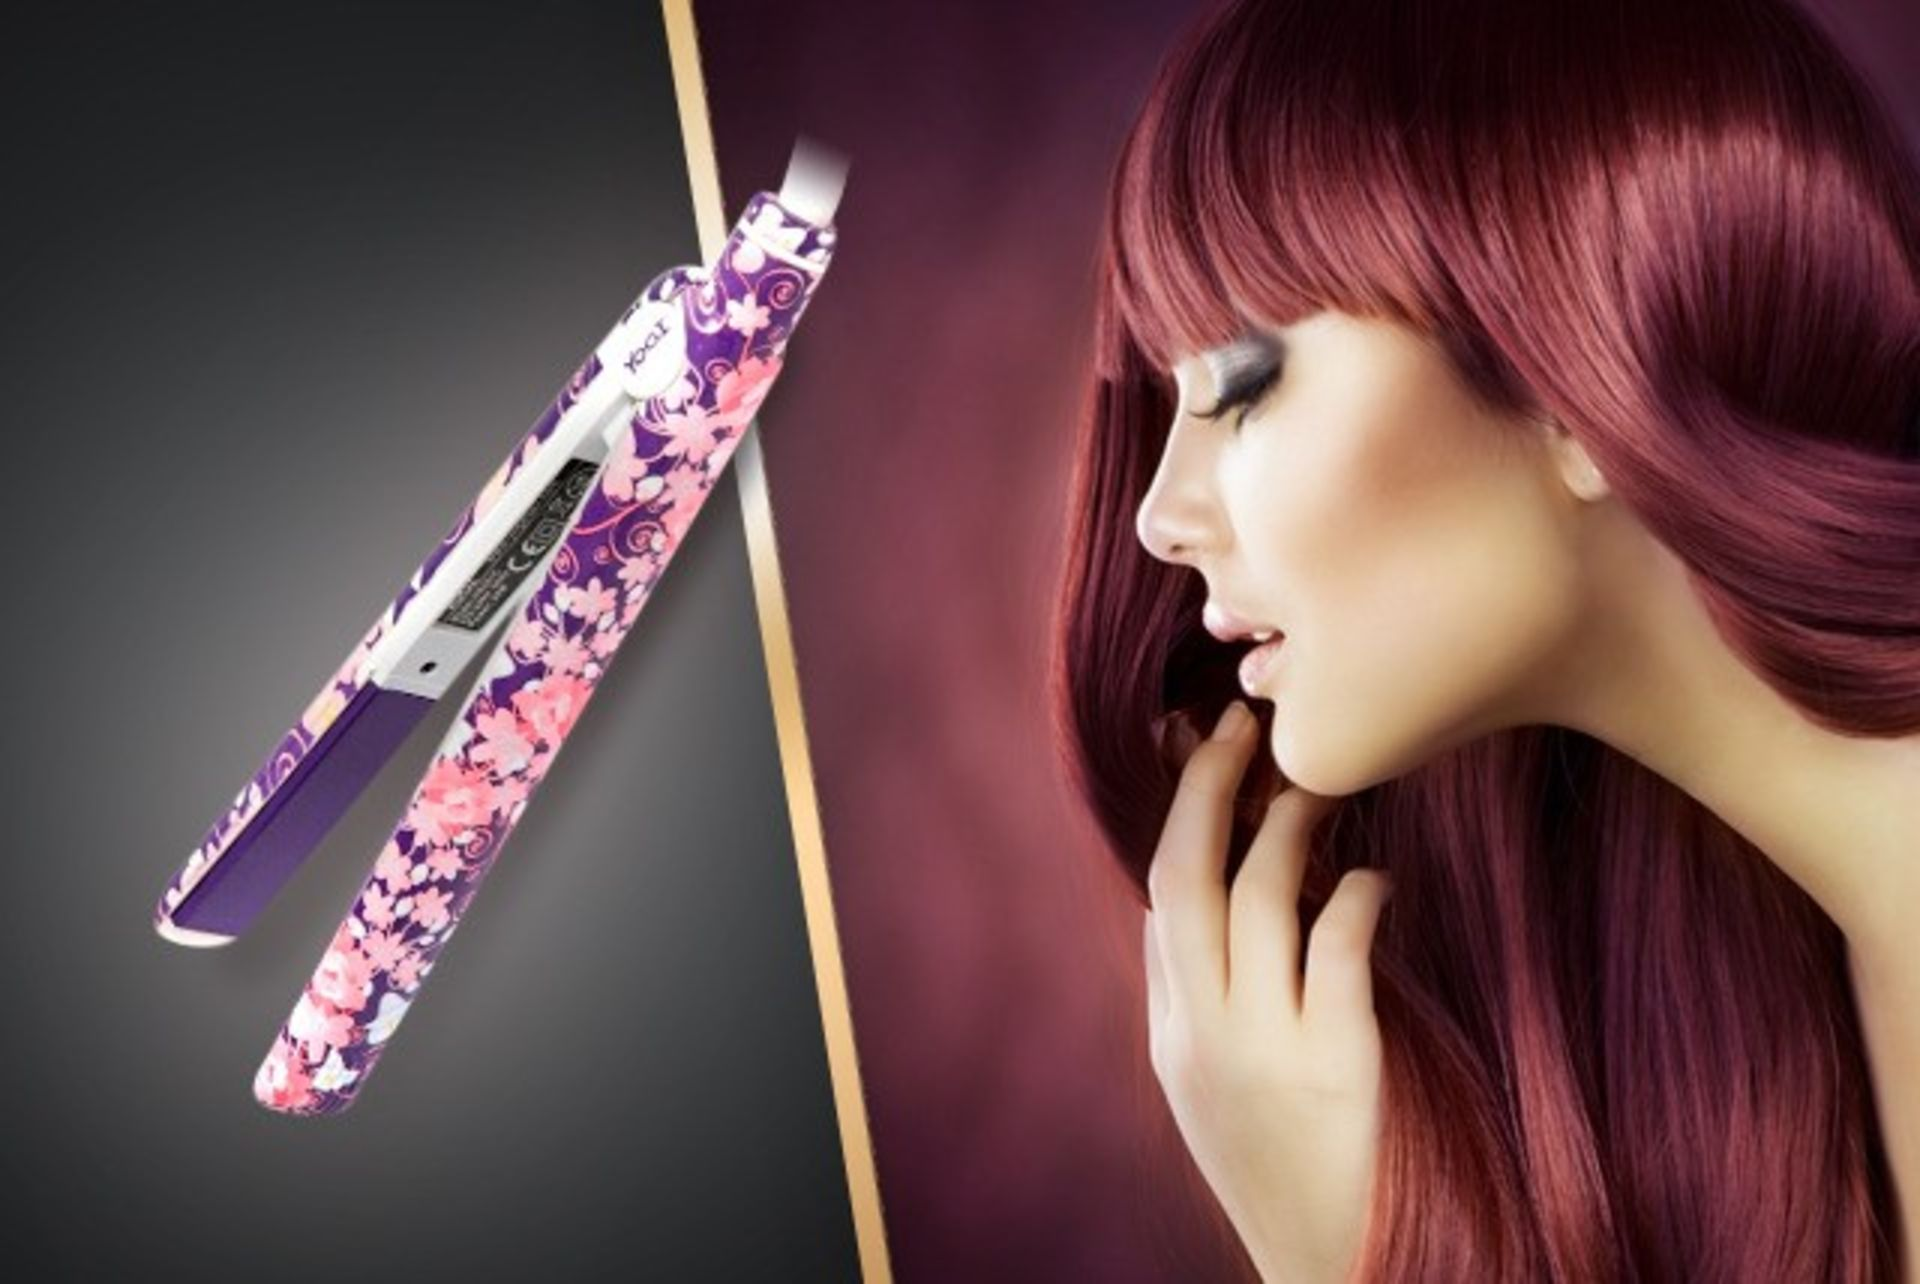 Lot 10775 - V Brand New Yogi Hair Straighteners With Ceramic & Tourmaline Infuded Floating Plates - Variable